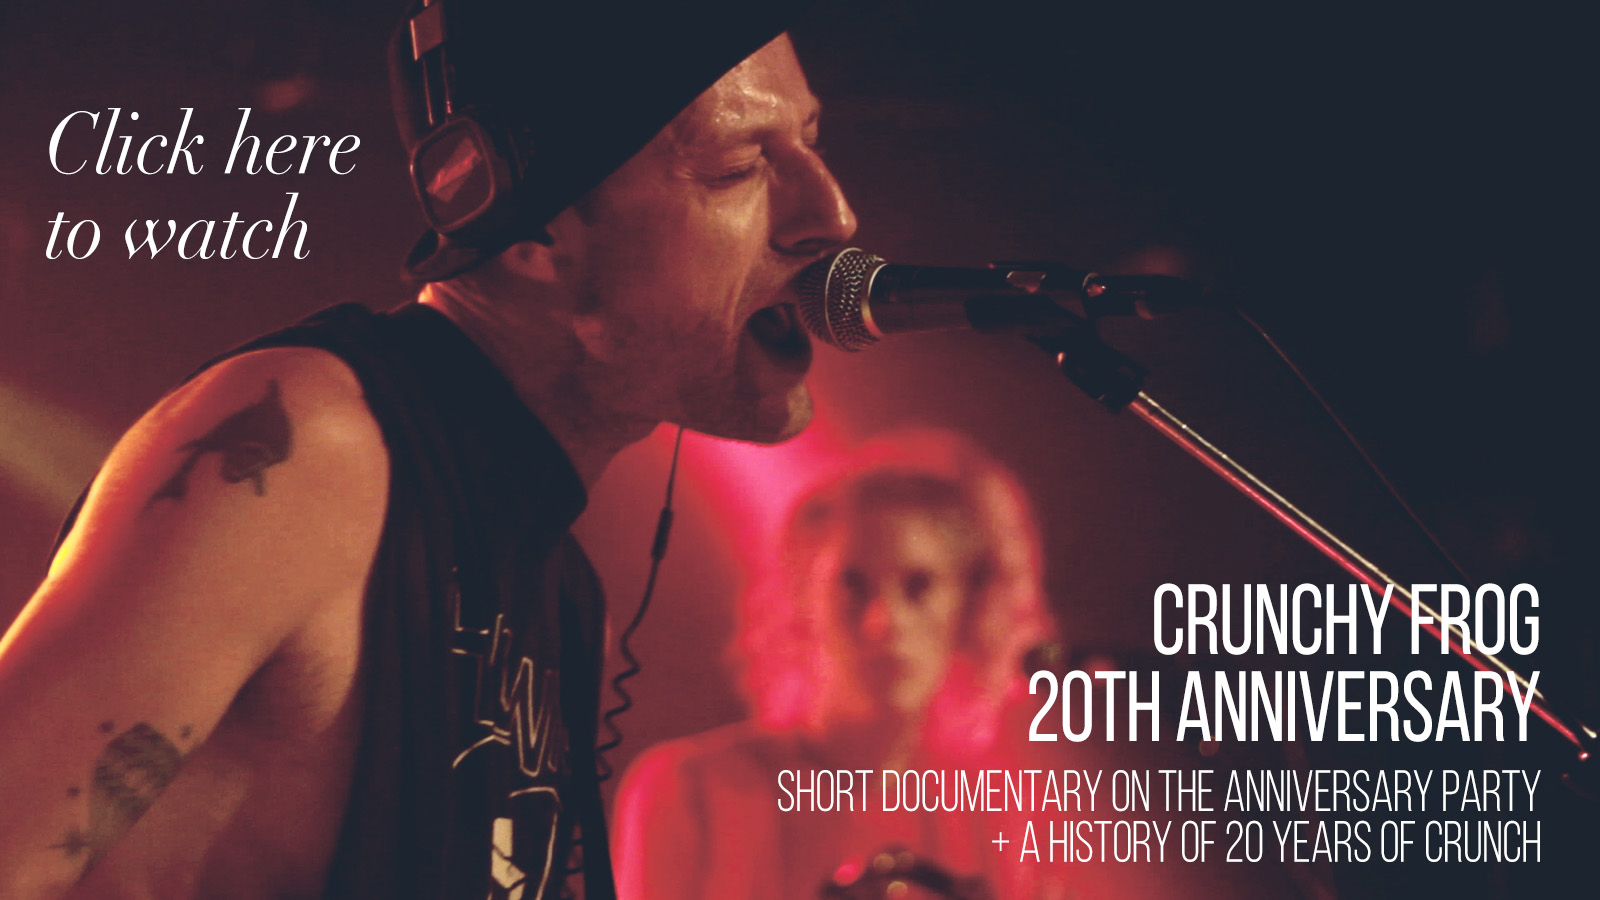 Crunchy Frog 20th Anniversary Party Documentary